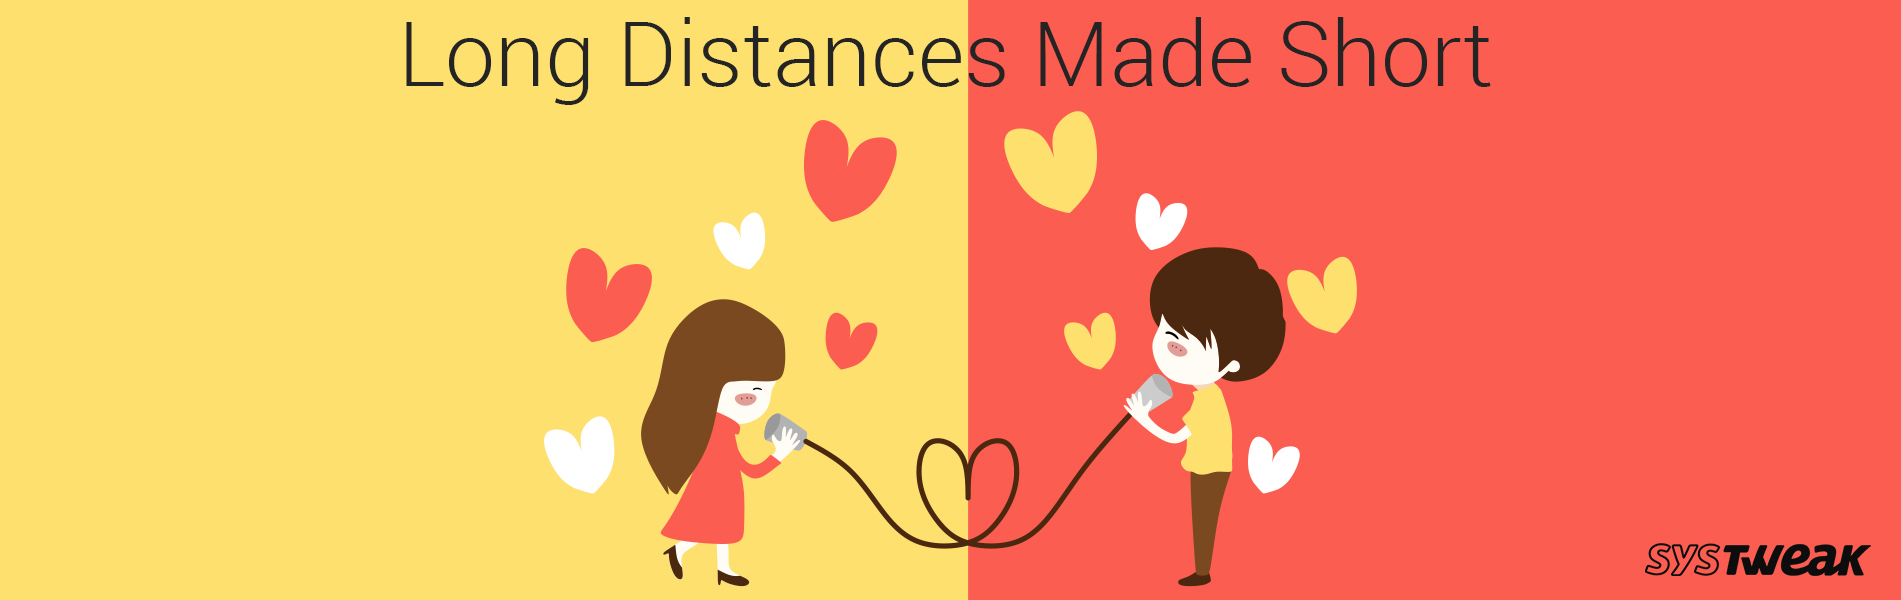 Valentine's Gifts For Geeky Couples In Long-Distance Relationships